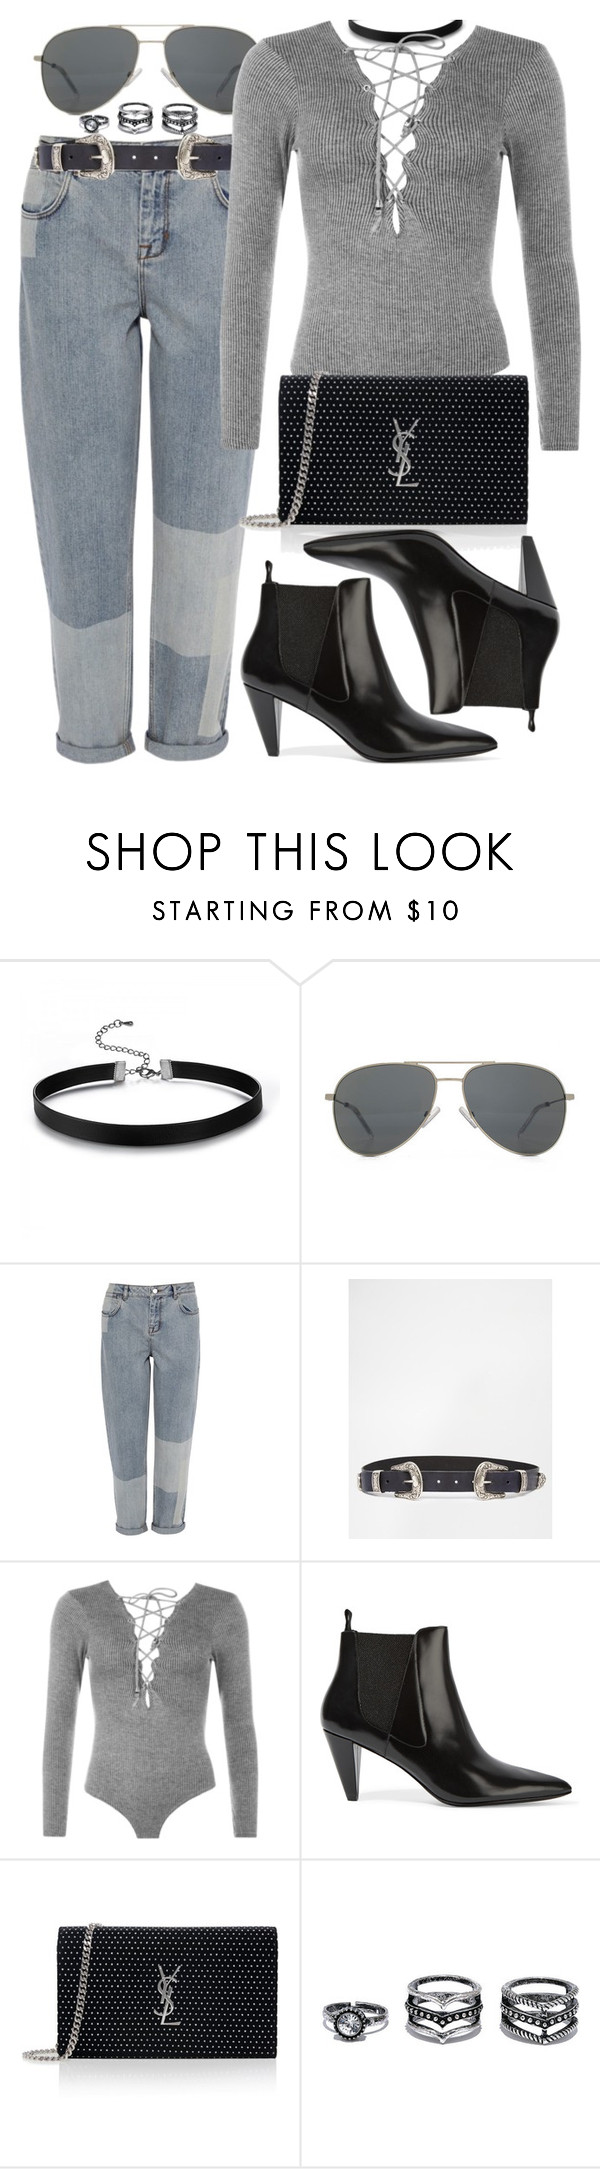 """Untitled #2356"" by briarachele ❤ liked on Polyvore featuring Yves Saint Laurent, Karen Millen, ASOS, WearAll, Alexander Wang and LULUS"